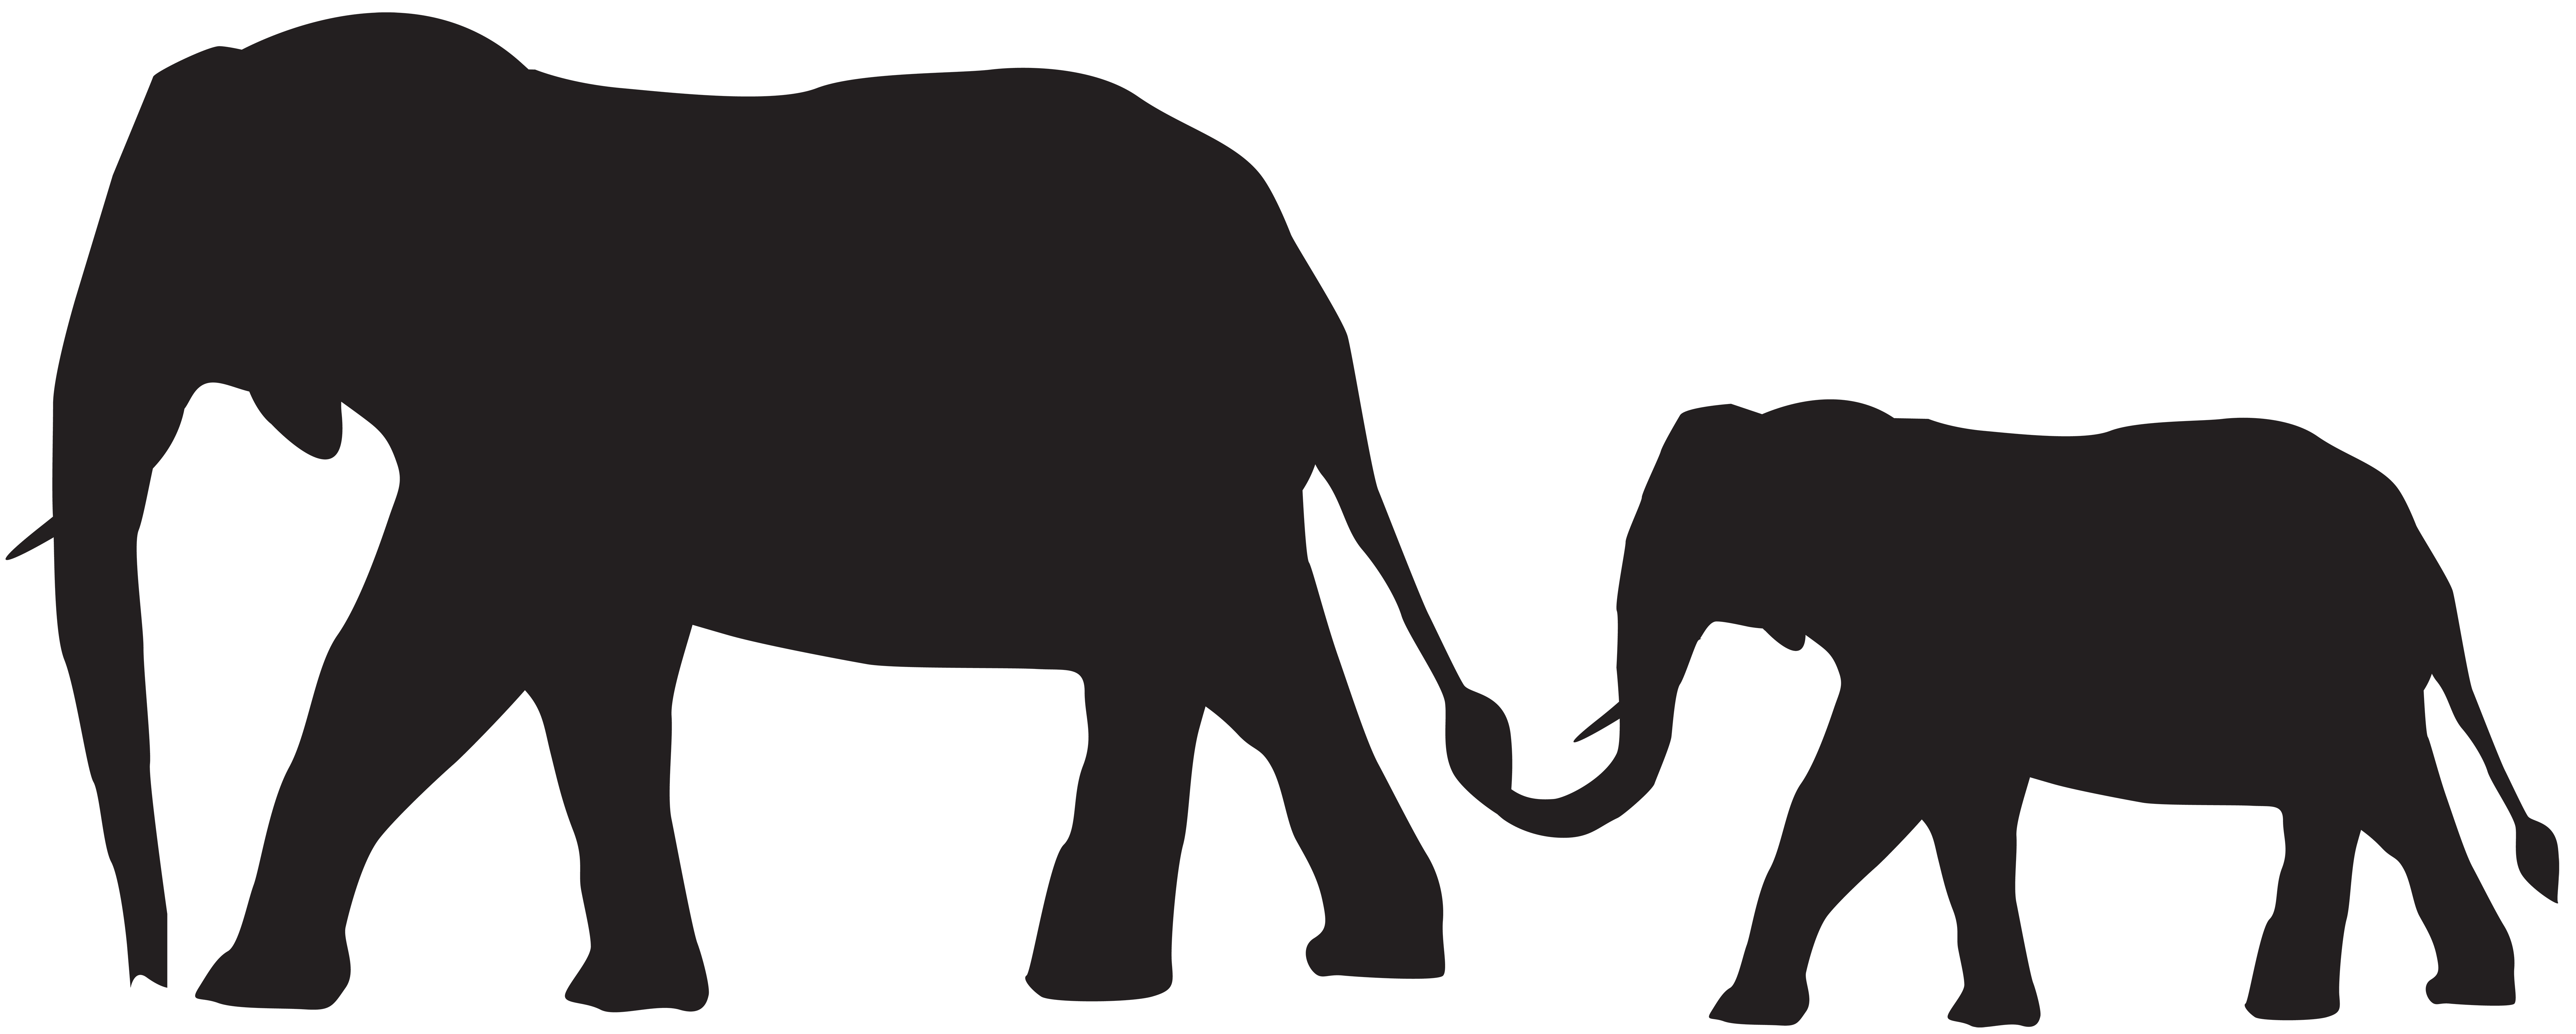 Baby india elephants clipart clip transparent download Indian elephant African elephant Silhouette - baby elephant png ... clip transparent download